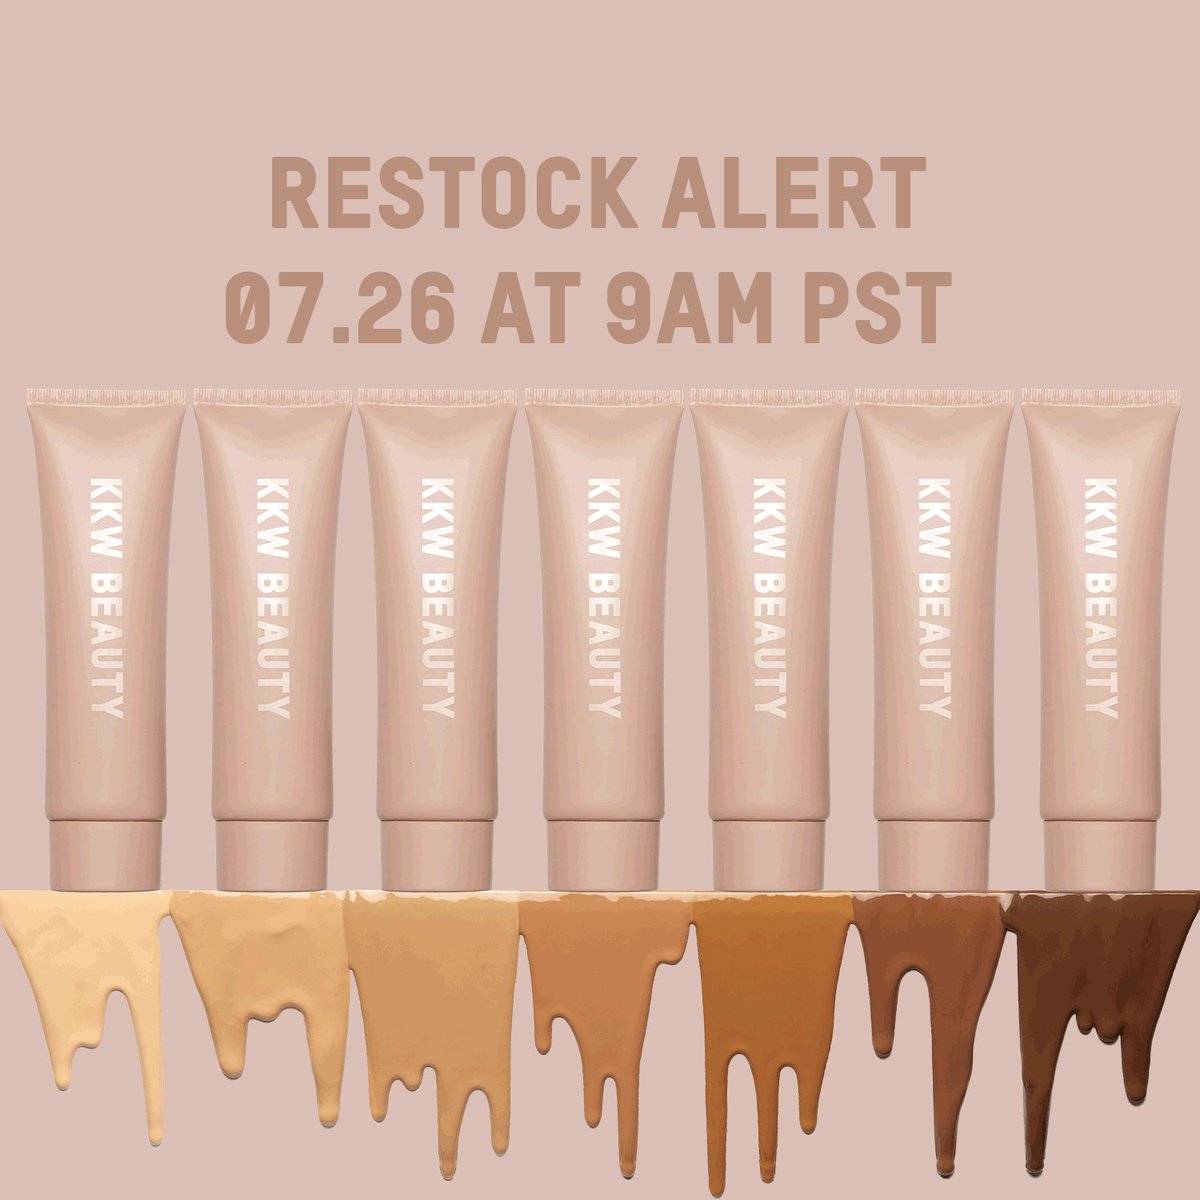 Restock alert!!!! My @kkwbeauty Body Collection is coming back to https://t.co/sbyklMQhdE today at 9am pst ✨ https://t.co/jlRfhL7etp